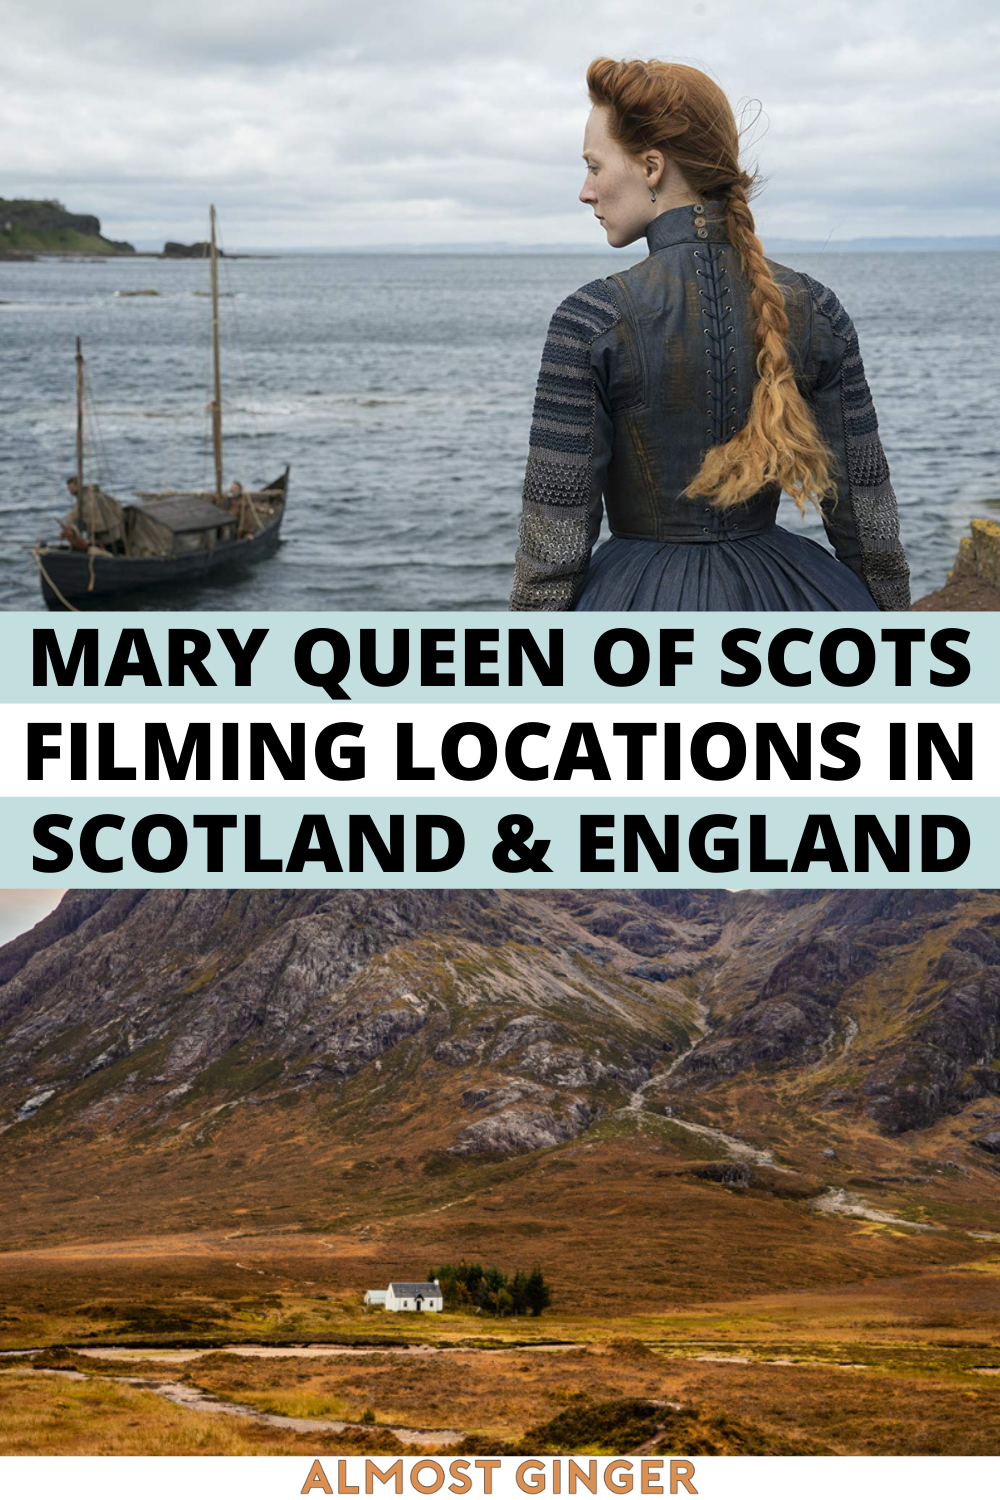 Mary Queen of Scots Filming Locations in Scotland & England | almostginger.com